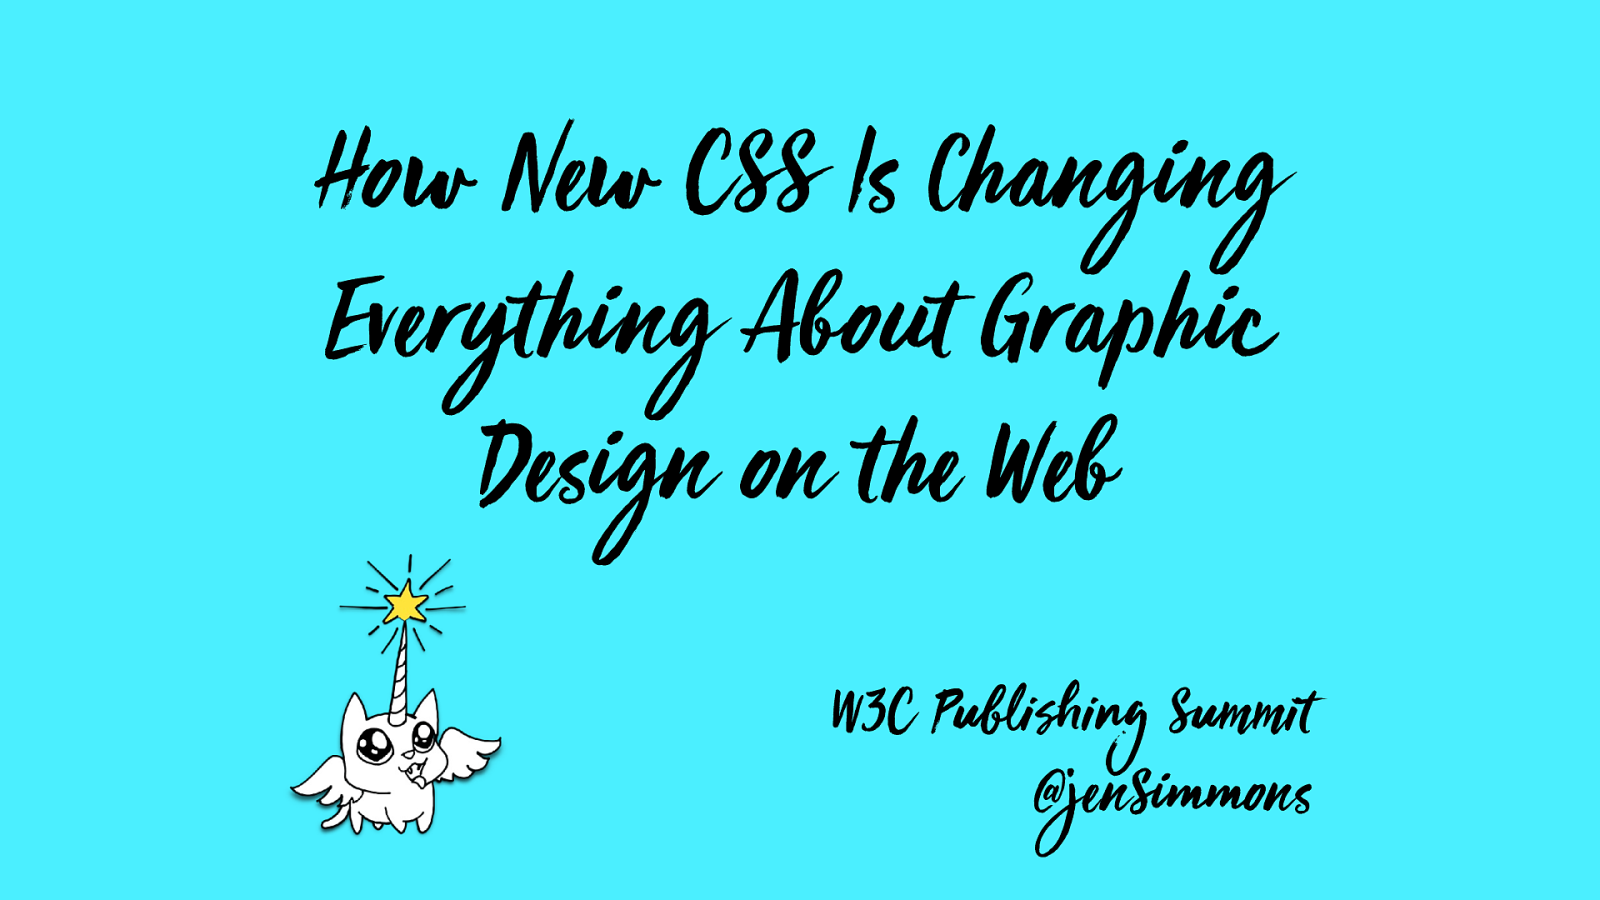 How New CSS Is Changing Everything About Graphic Design on the Web